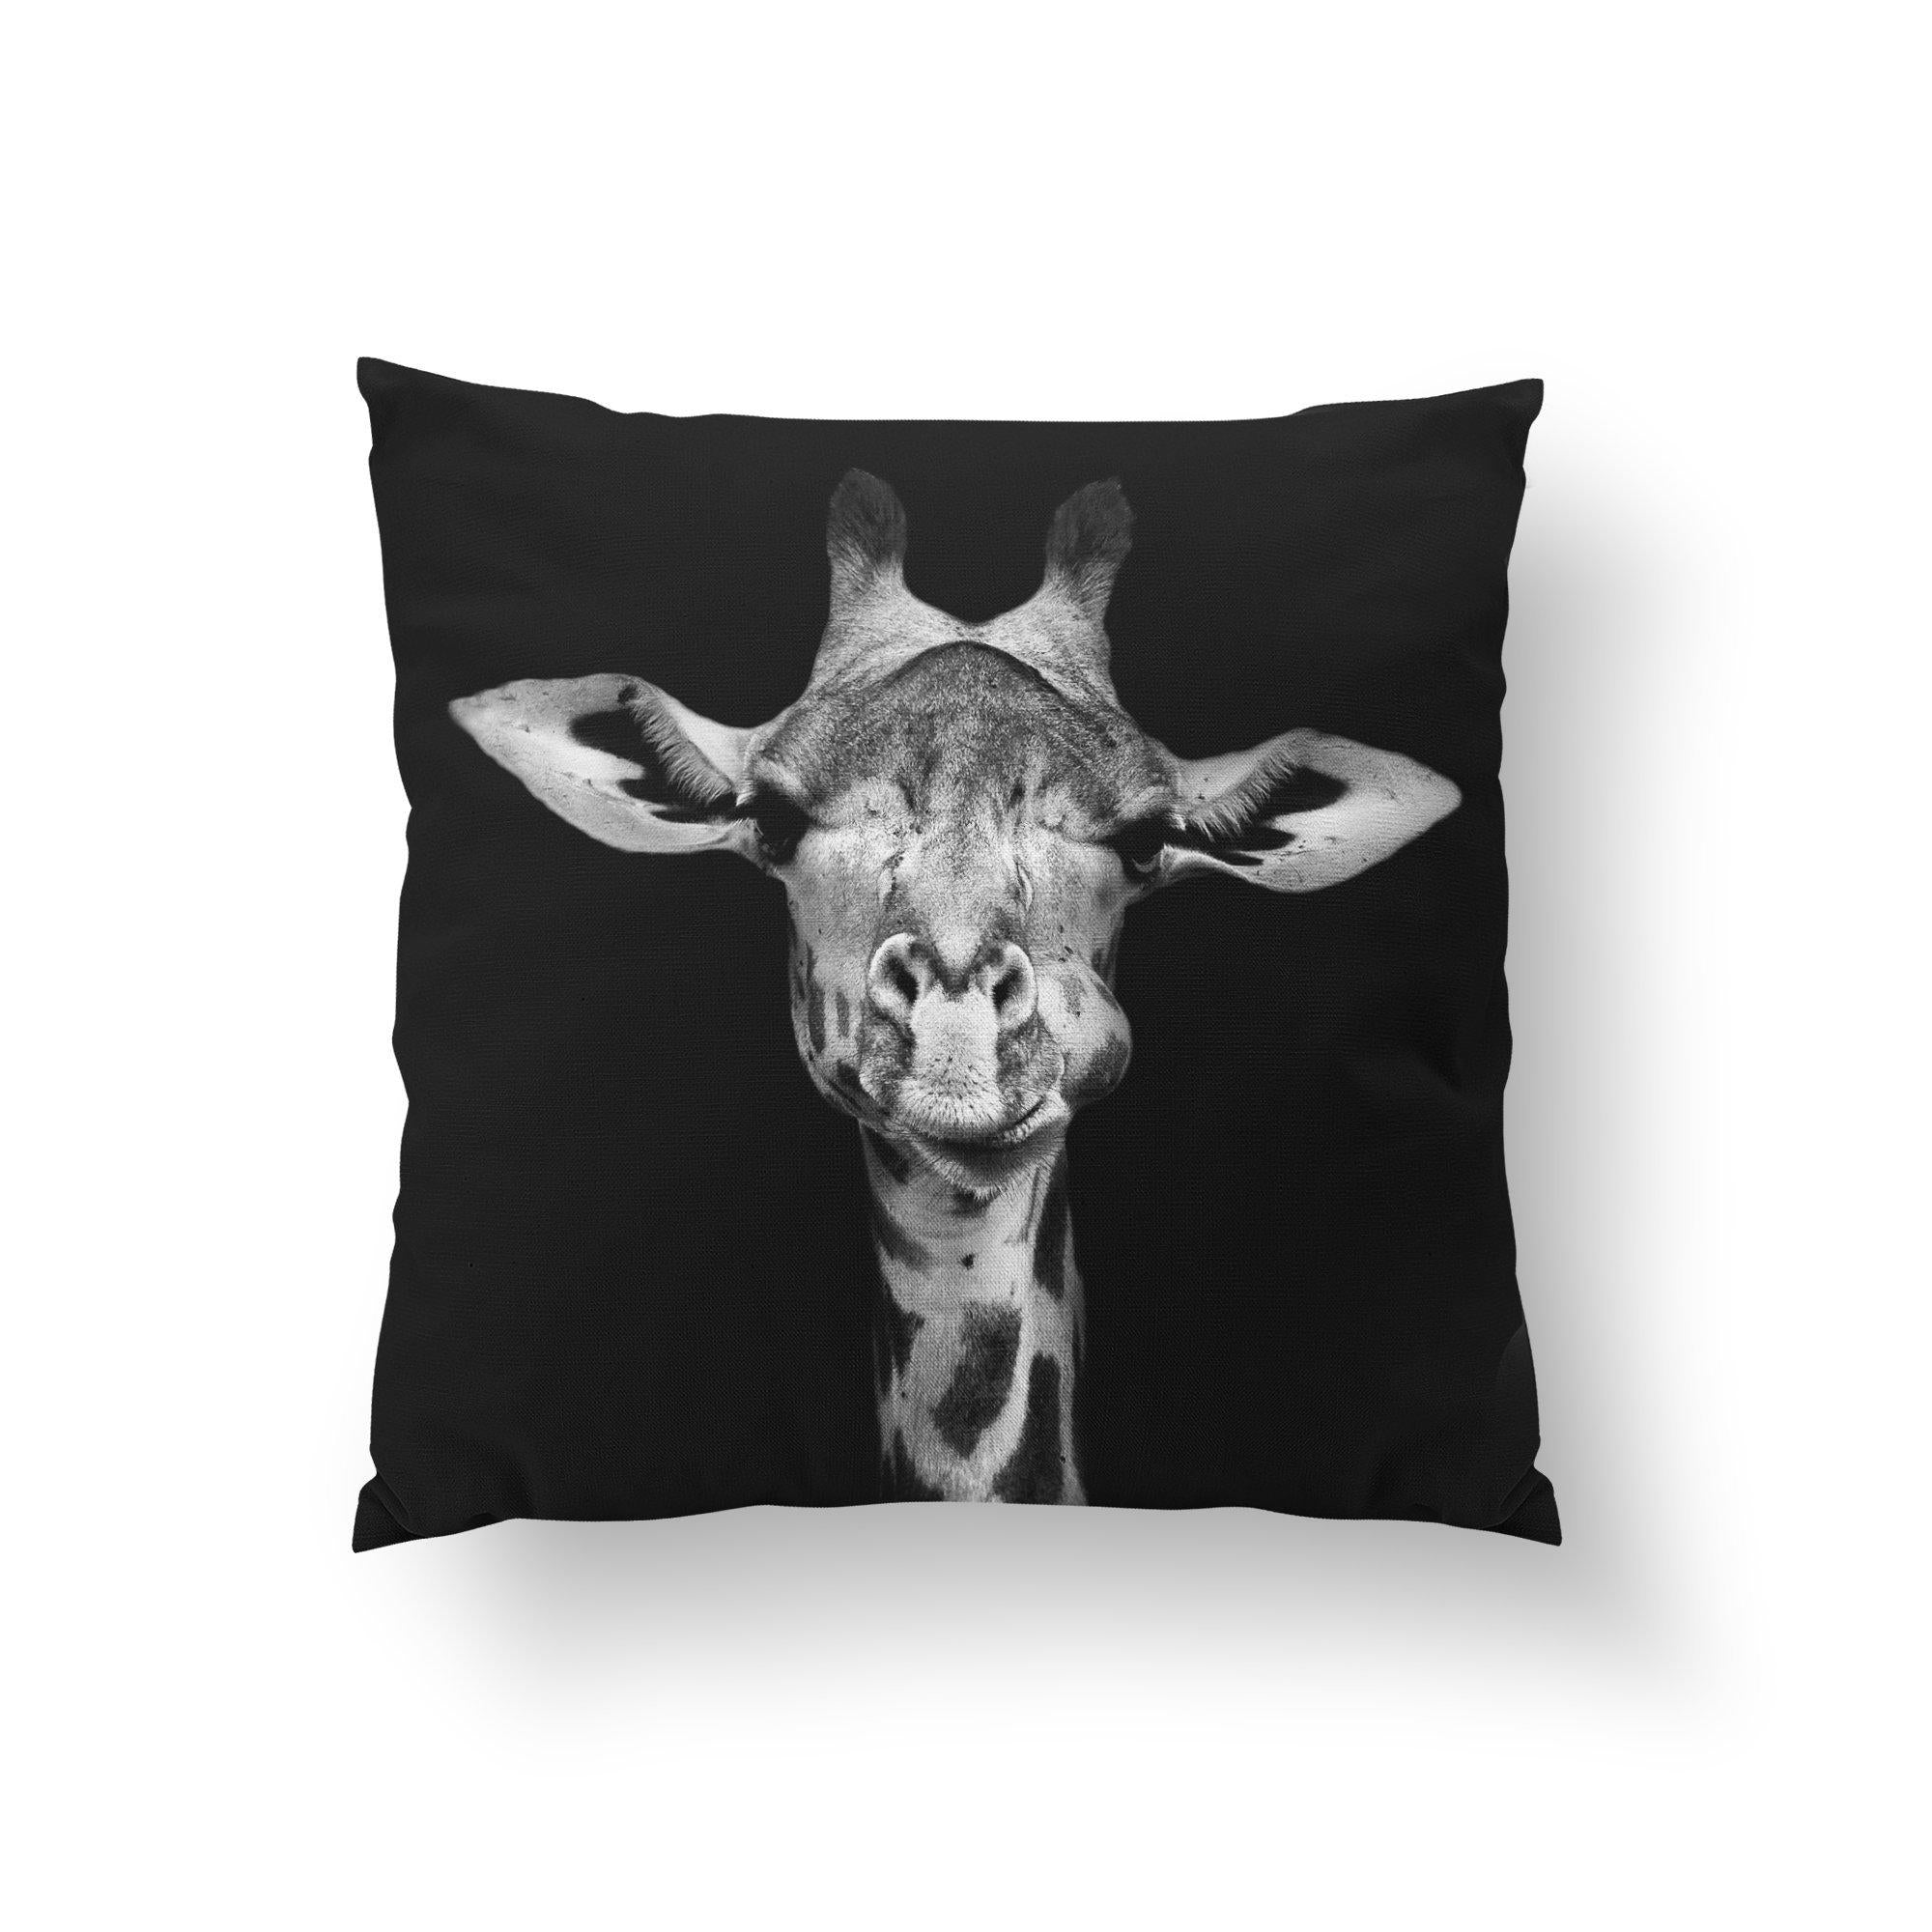 Giraffe Pillow - Pillow Covers - W.FRANCIS